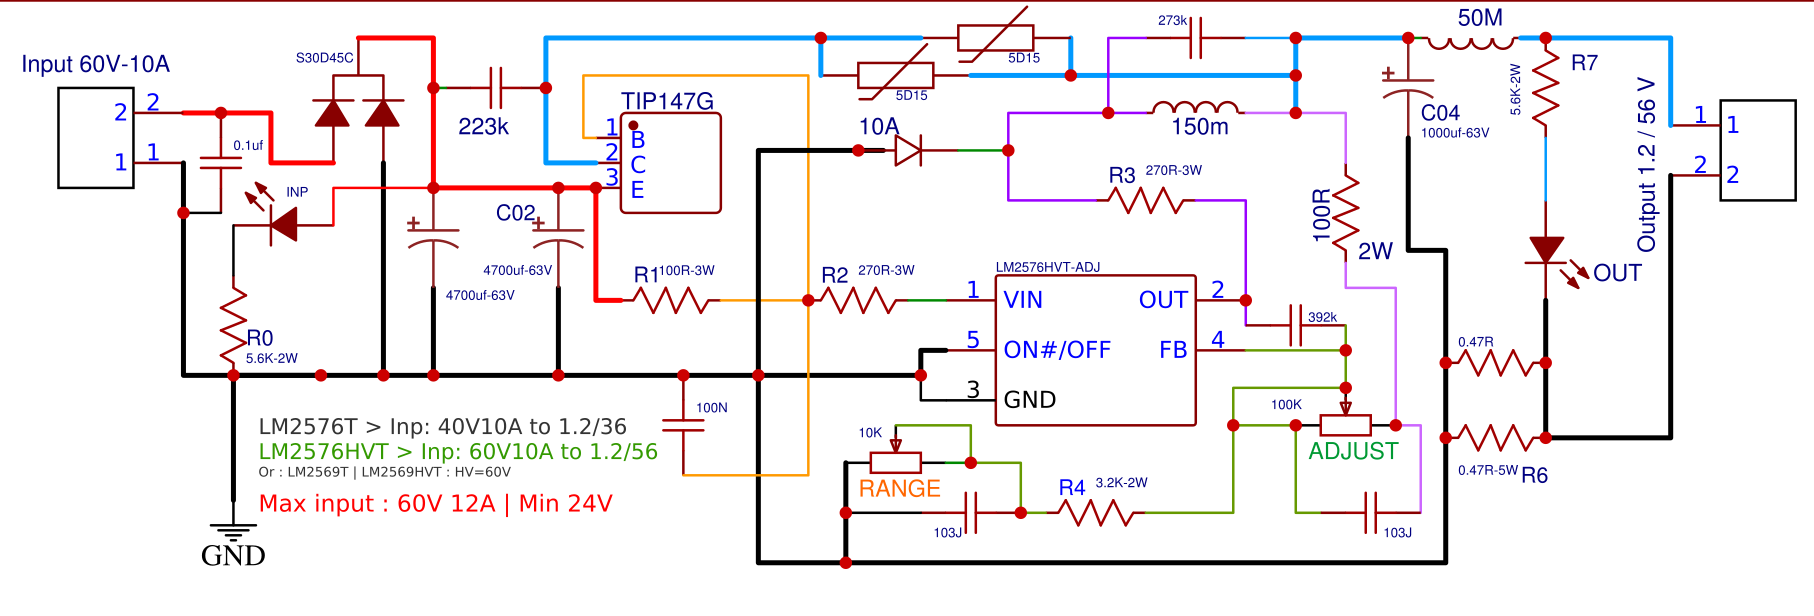 Schematic_arvin-dc-voltage-regulator-LM2576-with-Tip147_Sheet-1_20190918111149.png